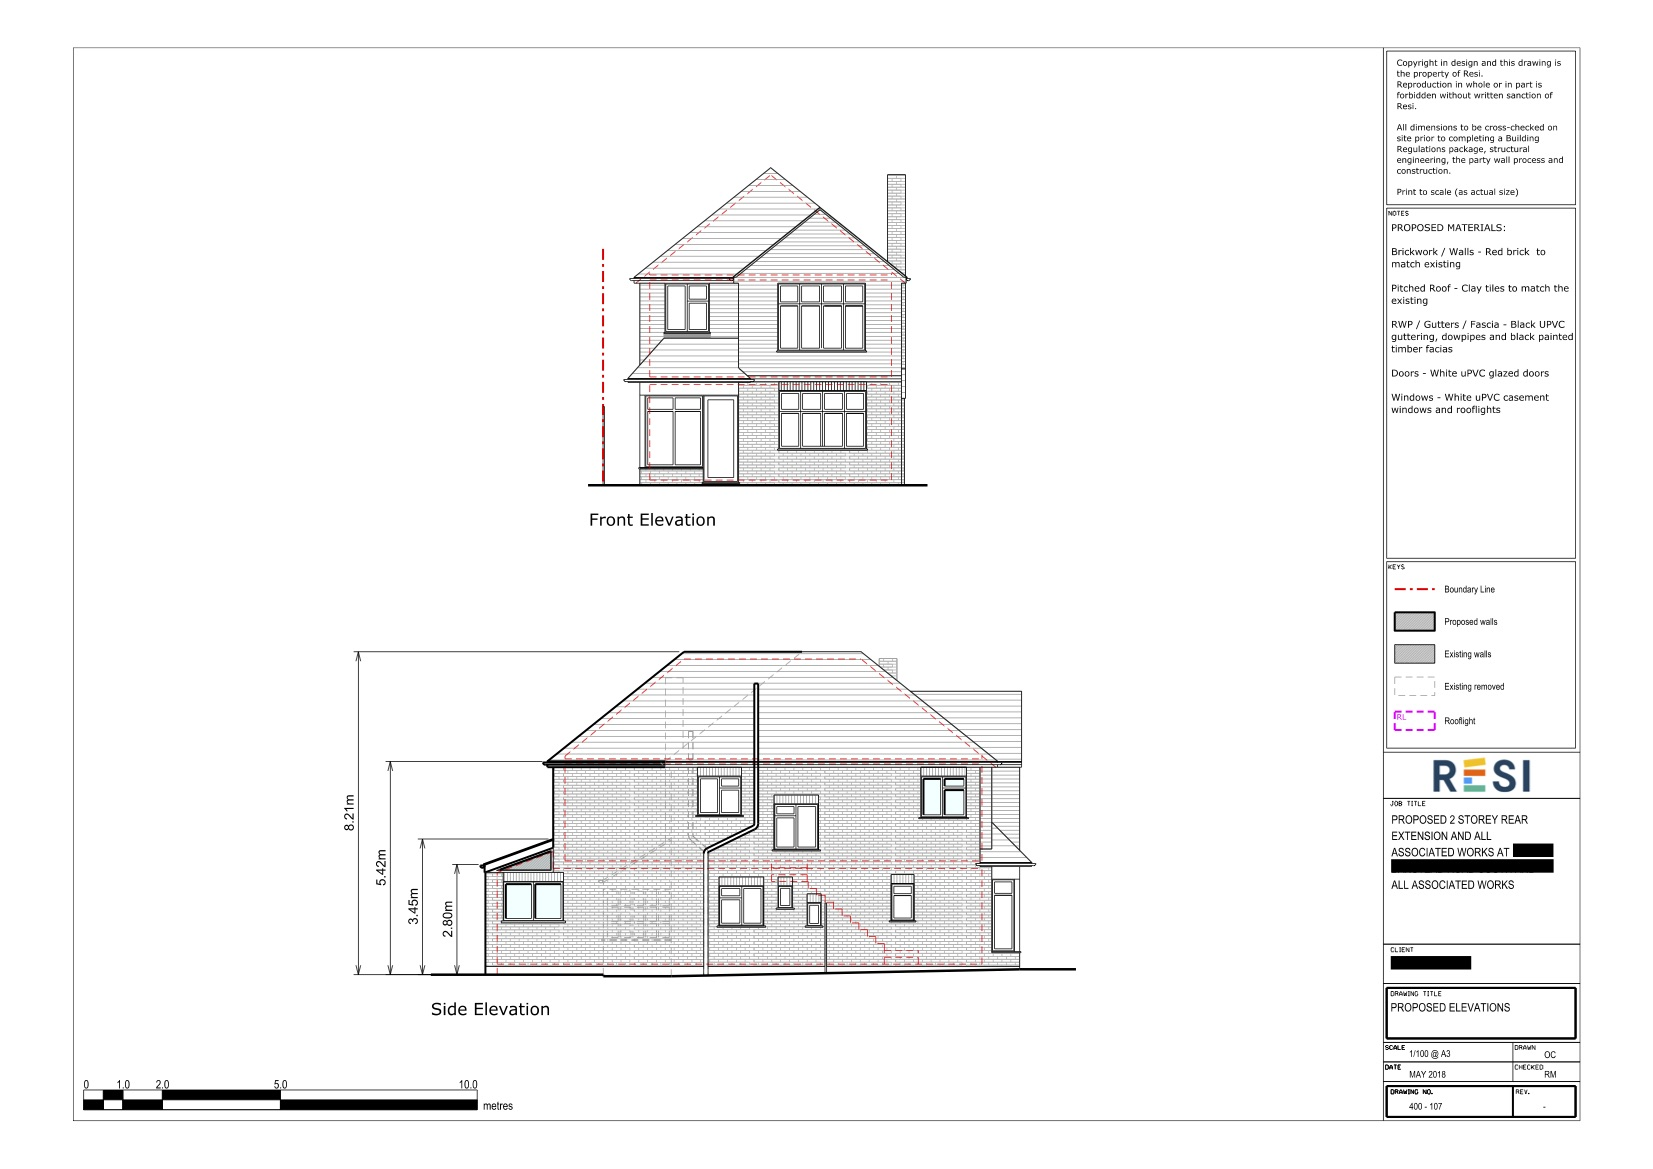 Architectural drawings   gf front and side elevations